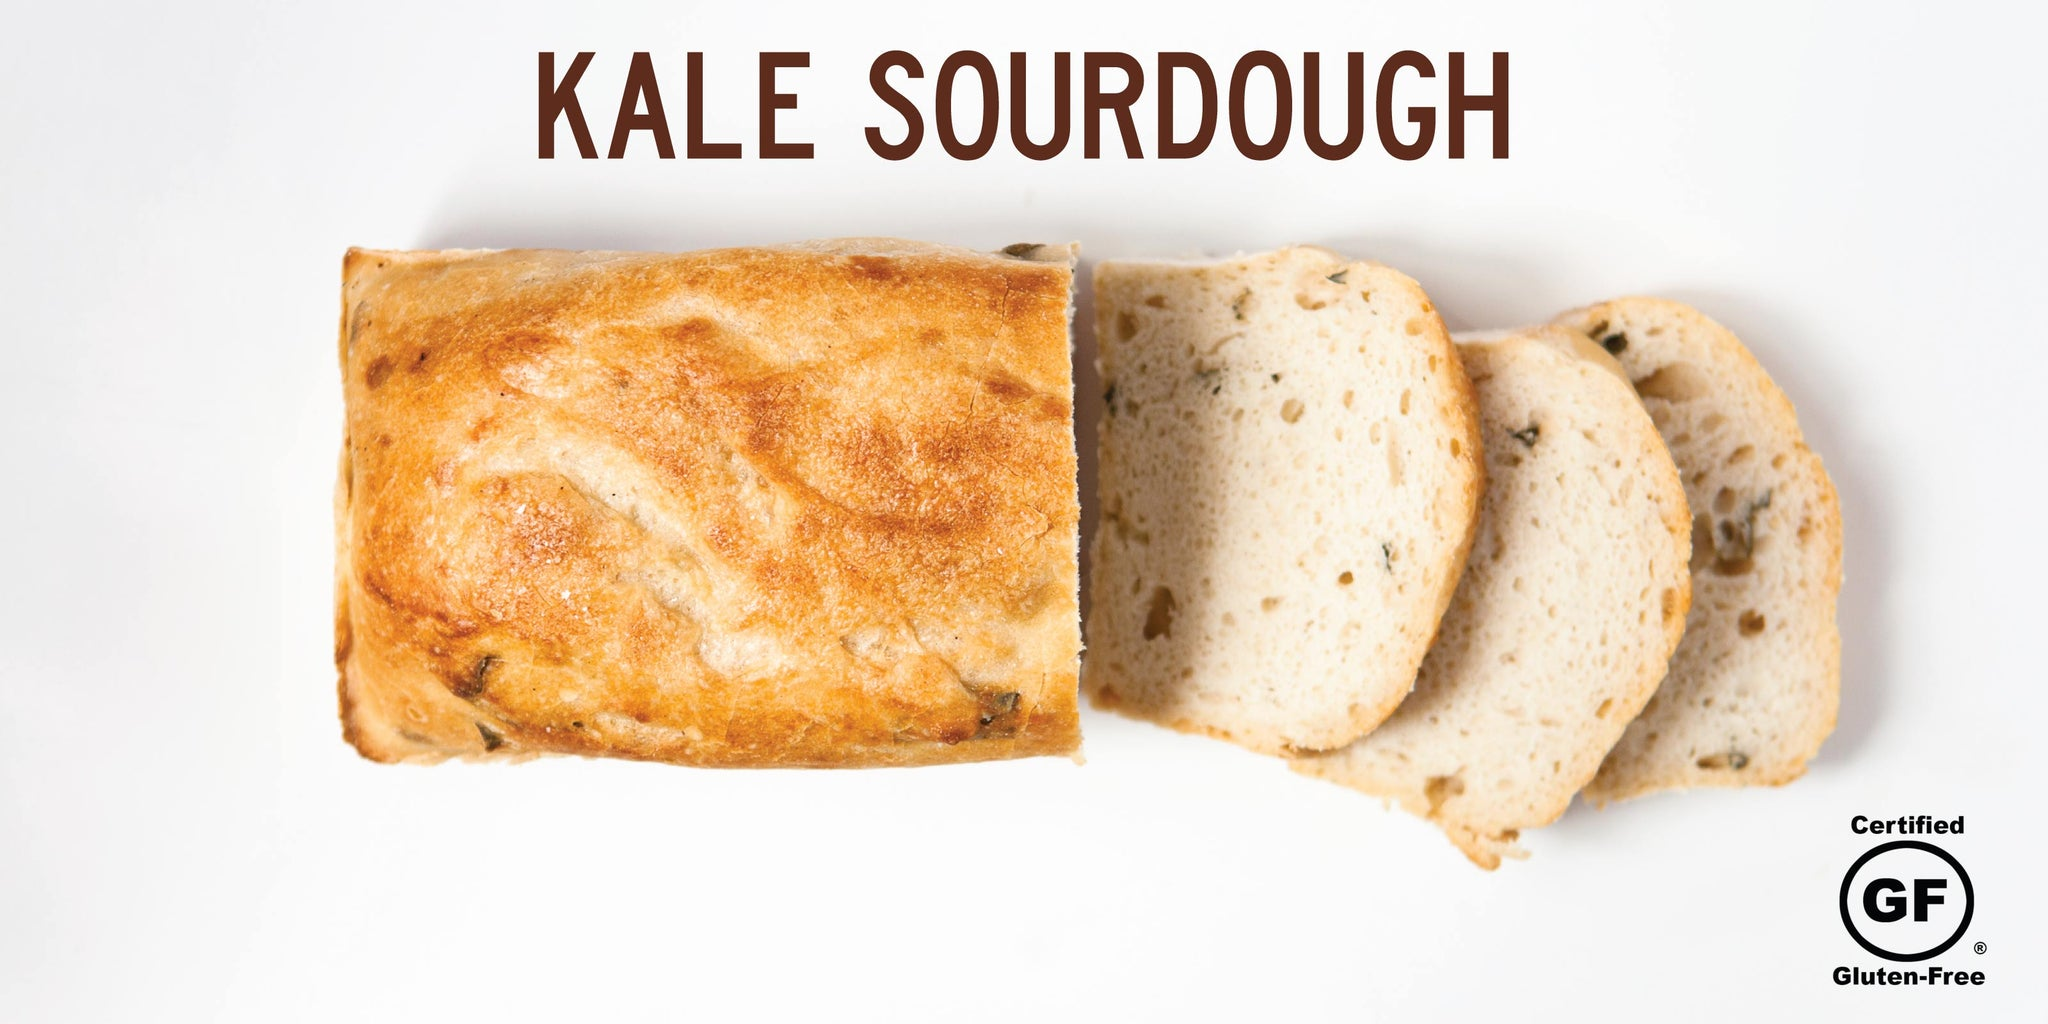 kale sourdough gluten-free